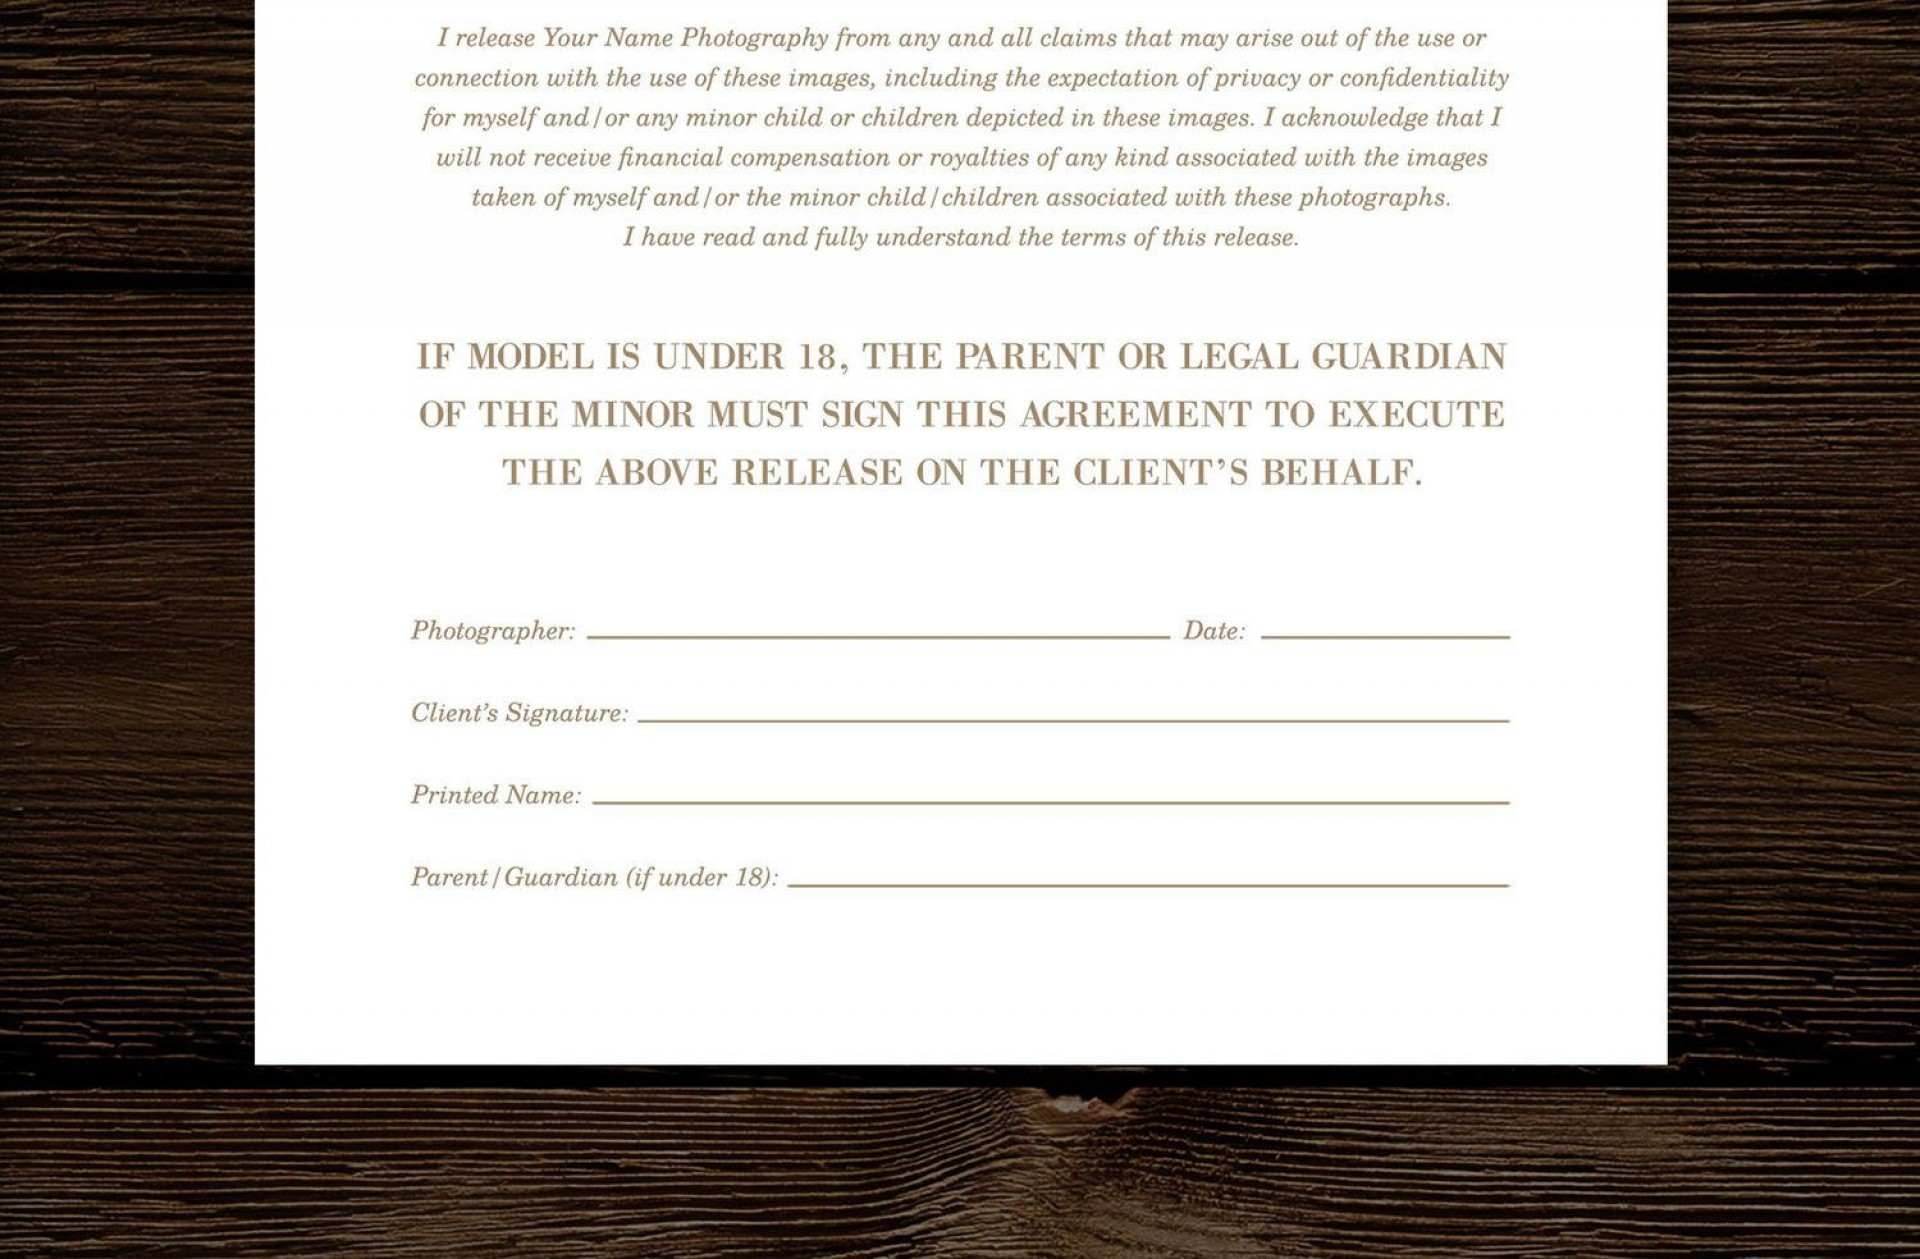 008 Imposing Model Release Form Template High Def  Photography Uk Gdpr Australia1920